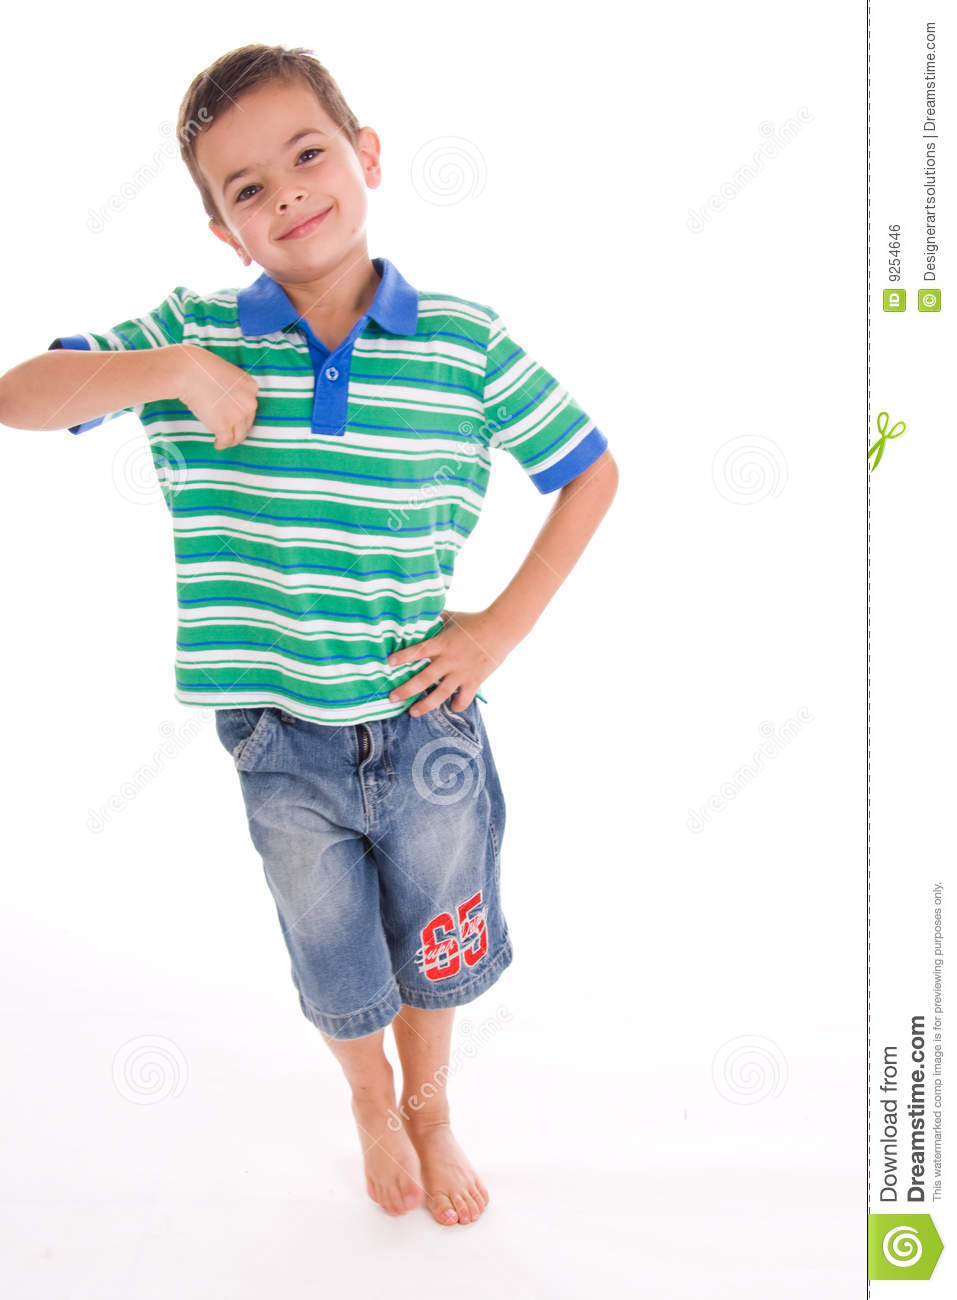 Boy leaning stock photo. Image of happily, casual, playing ...